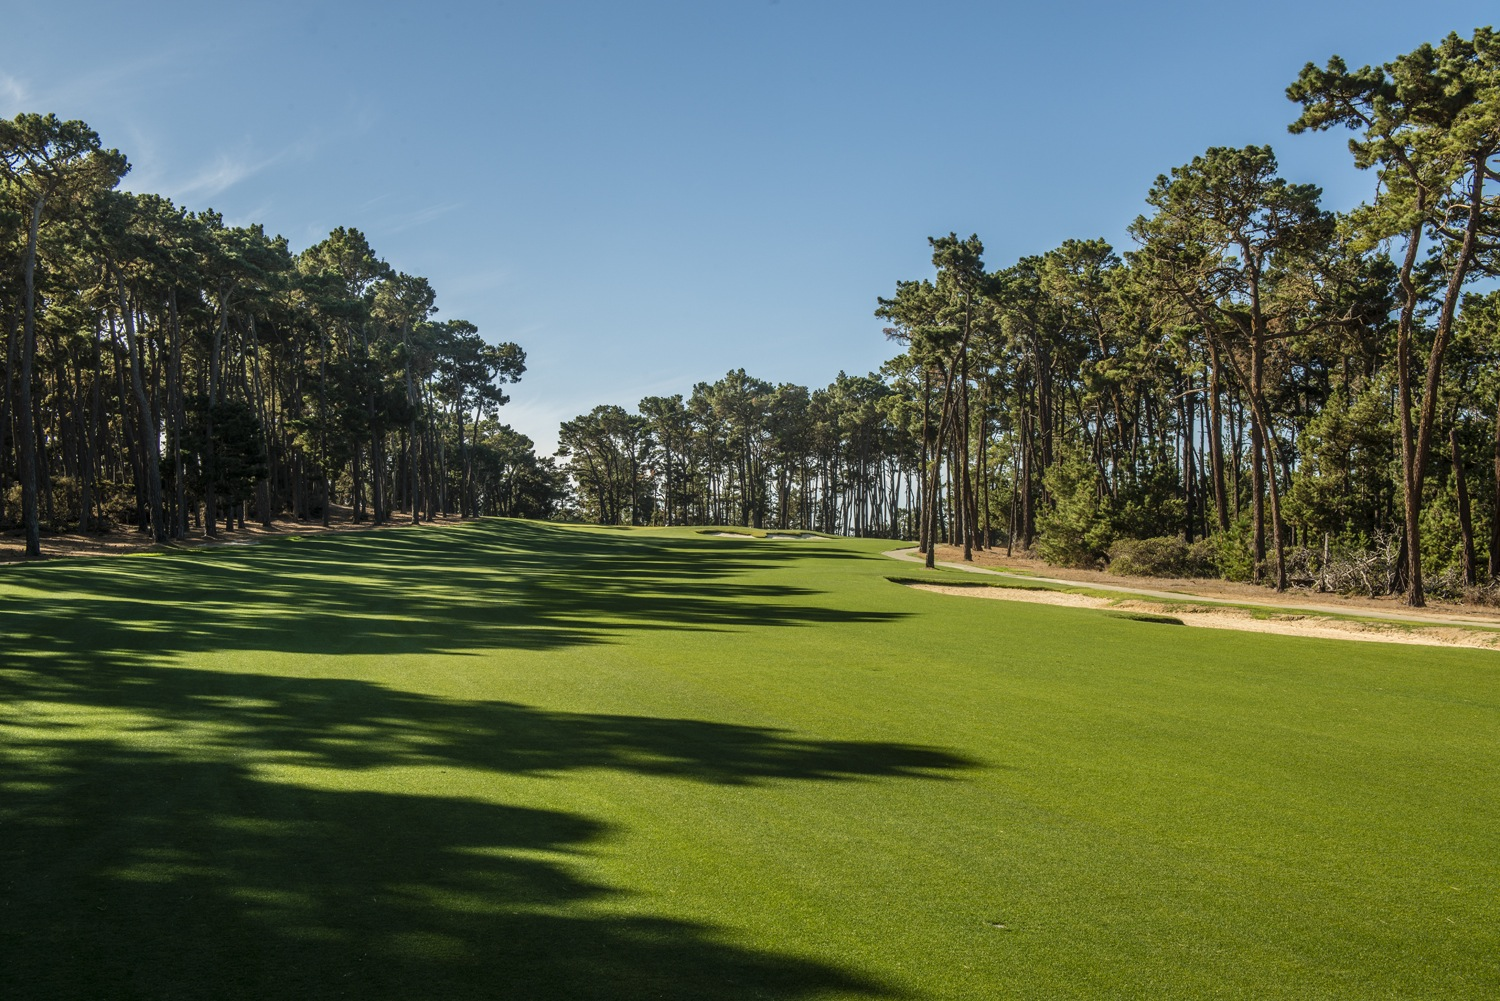 Overview of golf course named Poppy Hills Golf Course